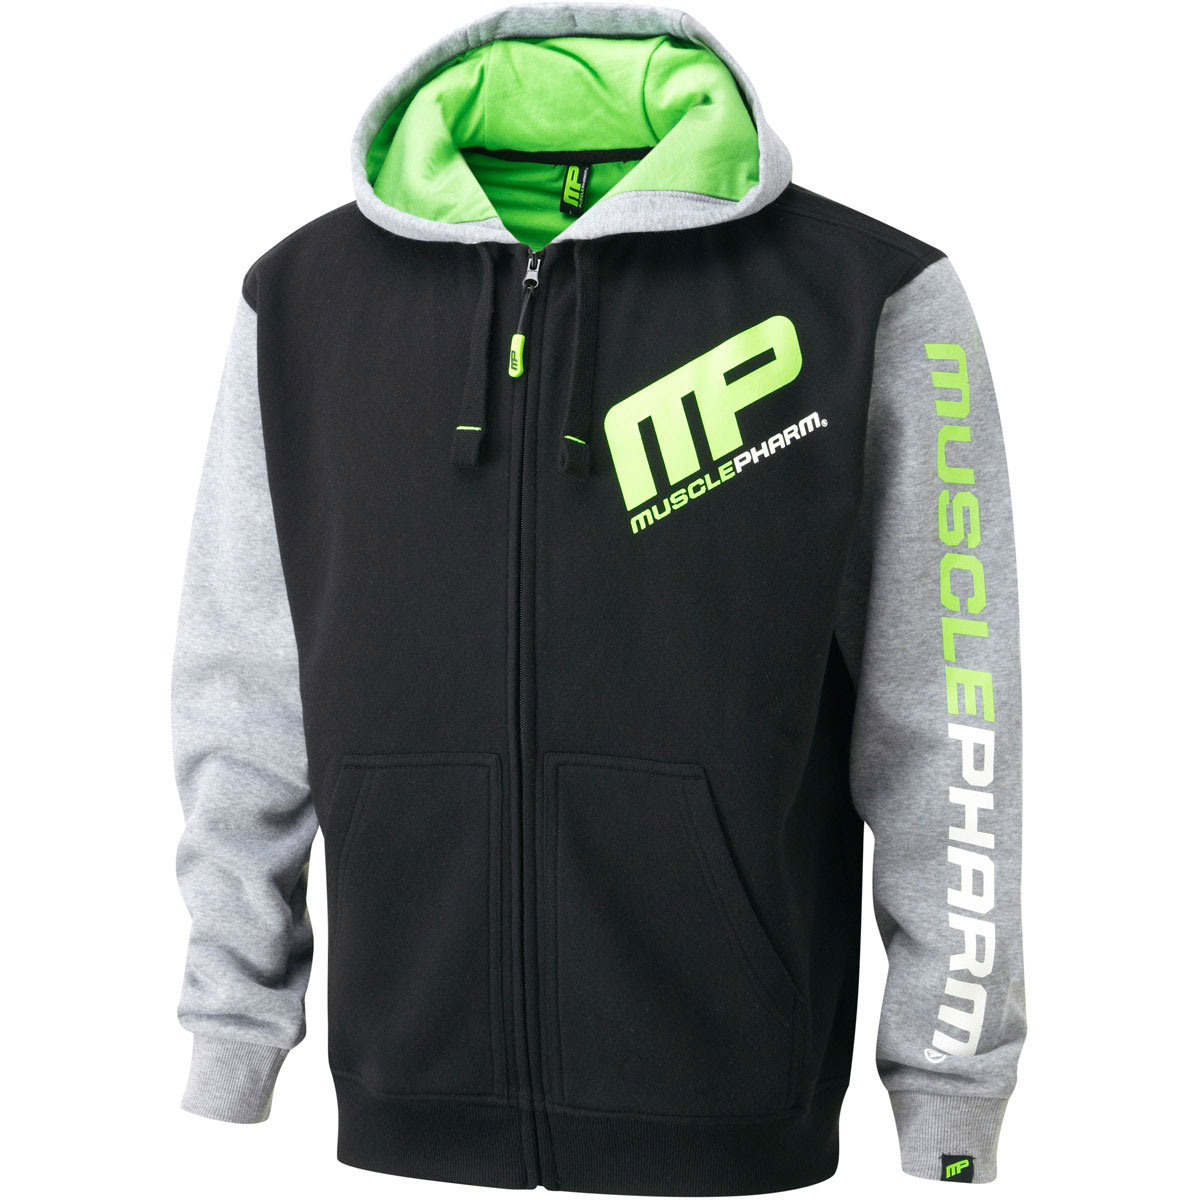 We sell a huge range of boxing gear, MMA gear, martial arts gear and various training and coaching equipment online at Fight Outlet.